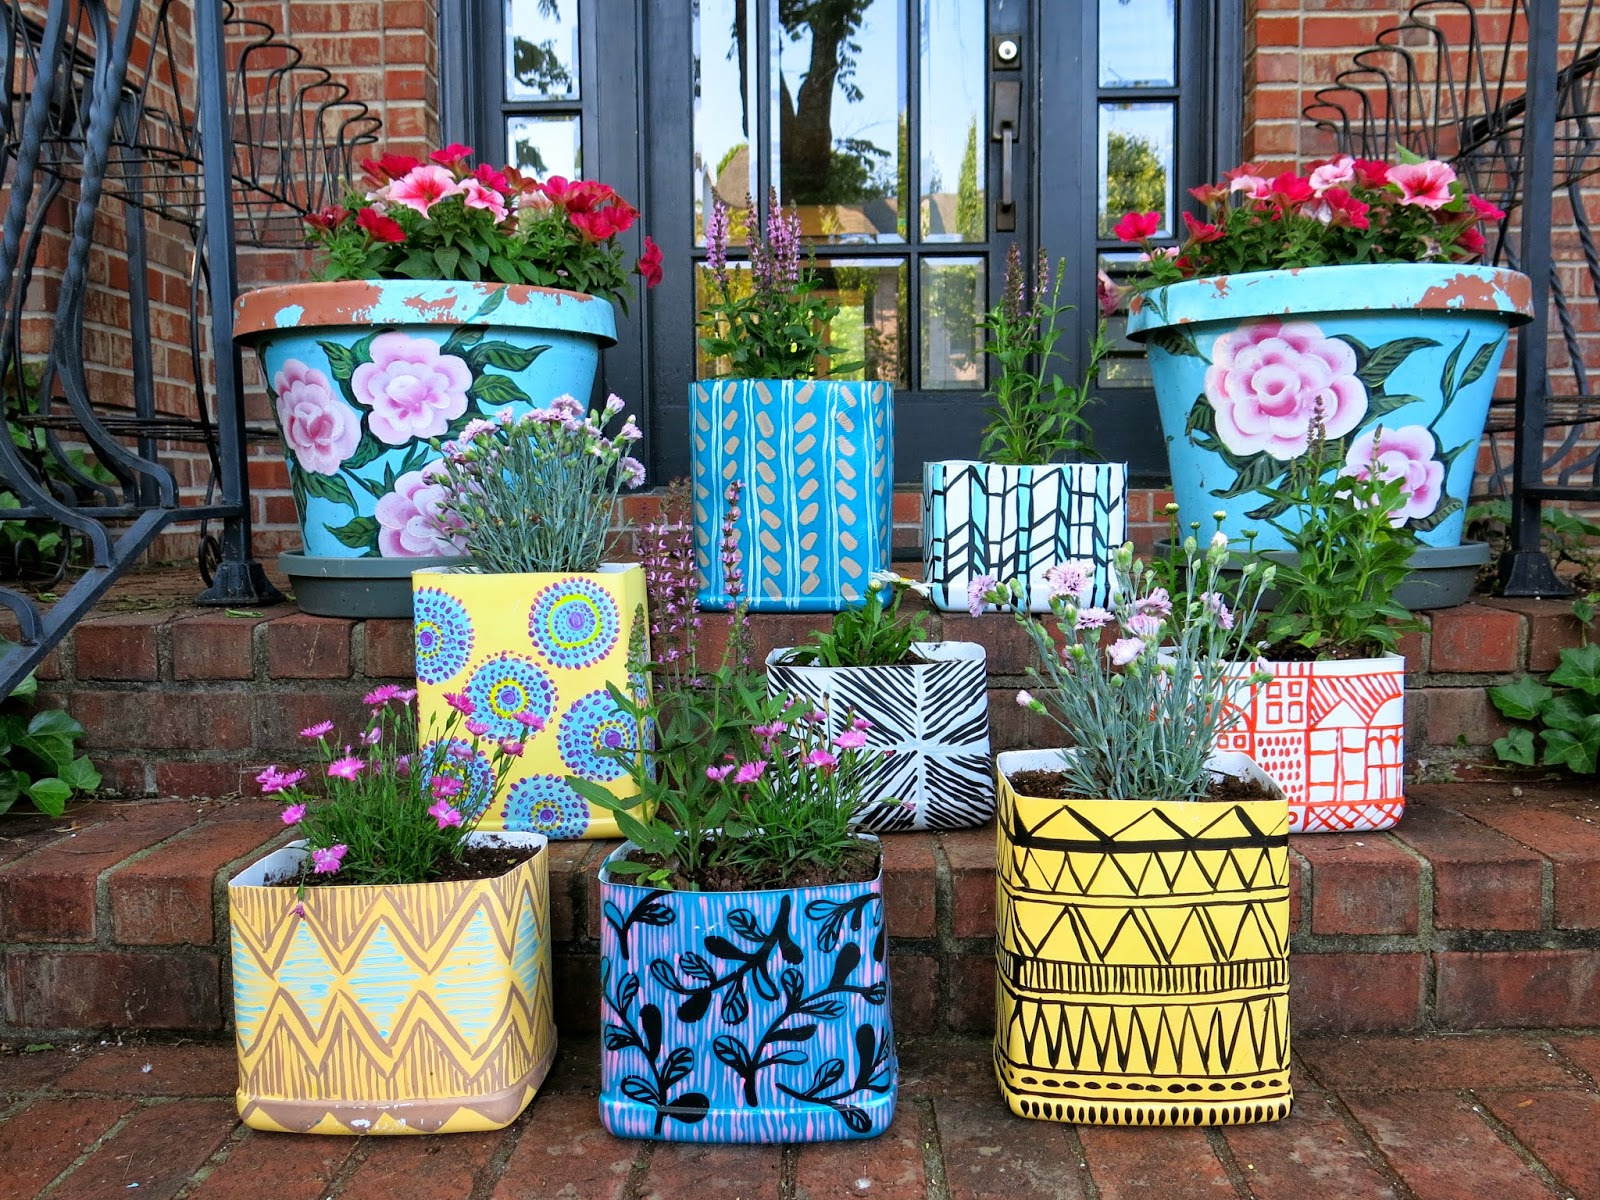 is cupboard you extra planters paint up dipped outdoor samples can photos make use this way to painted pin that great dipping those planter lights pots a